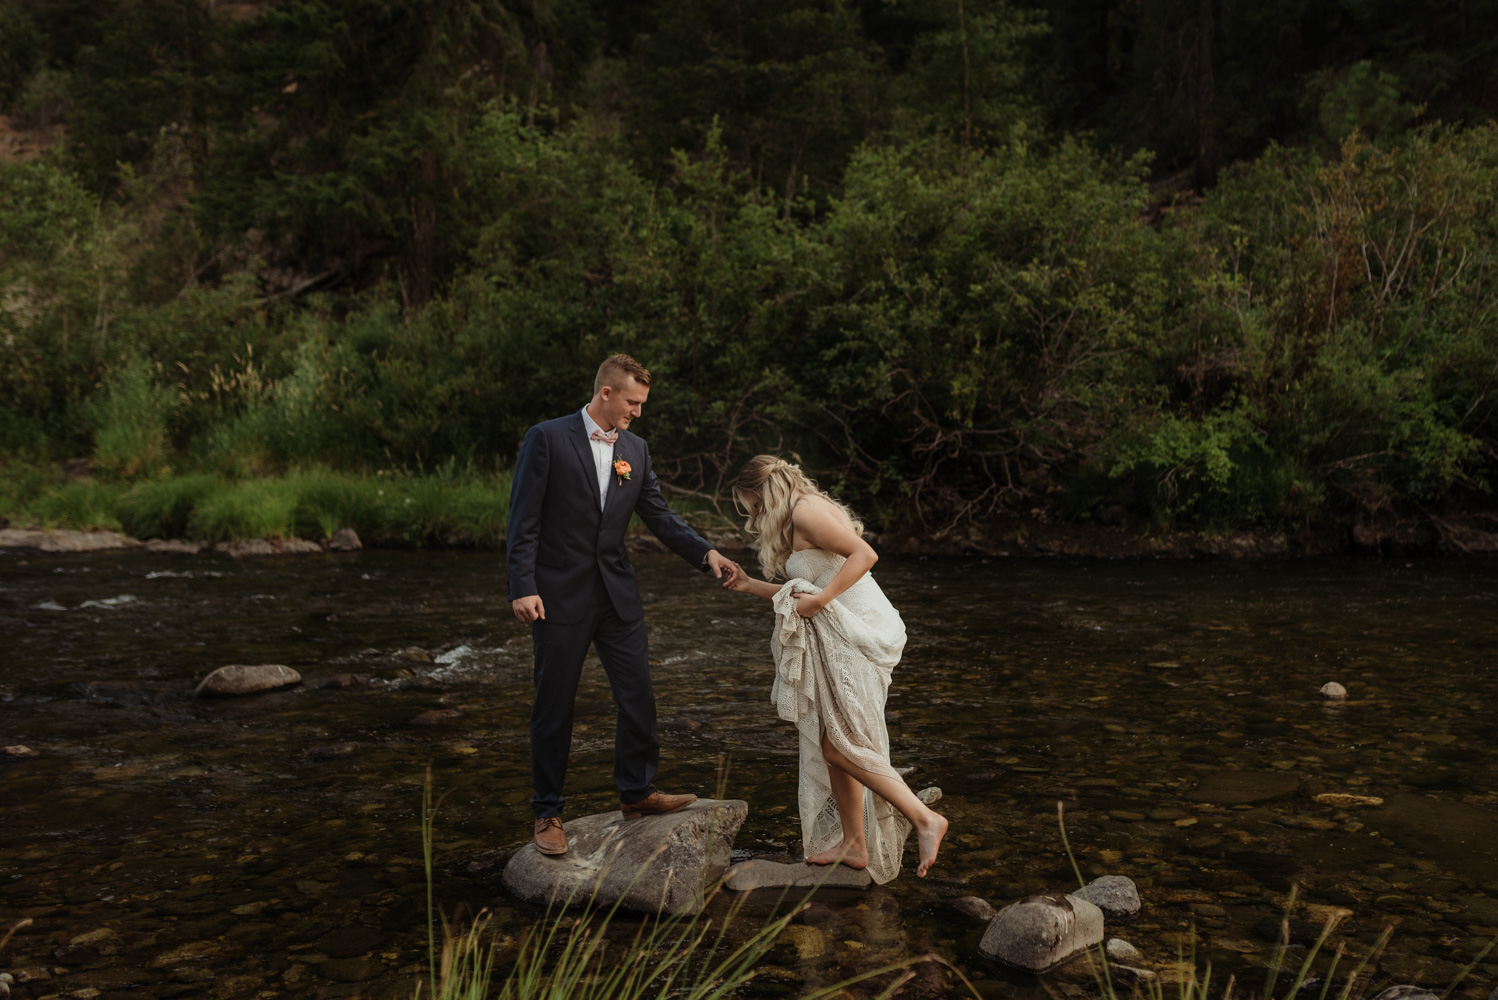 Twenty Mile House wedding couples photos by the river